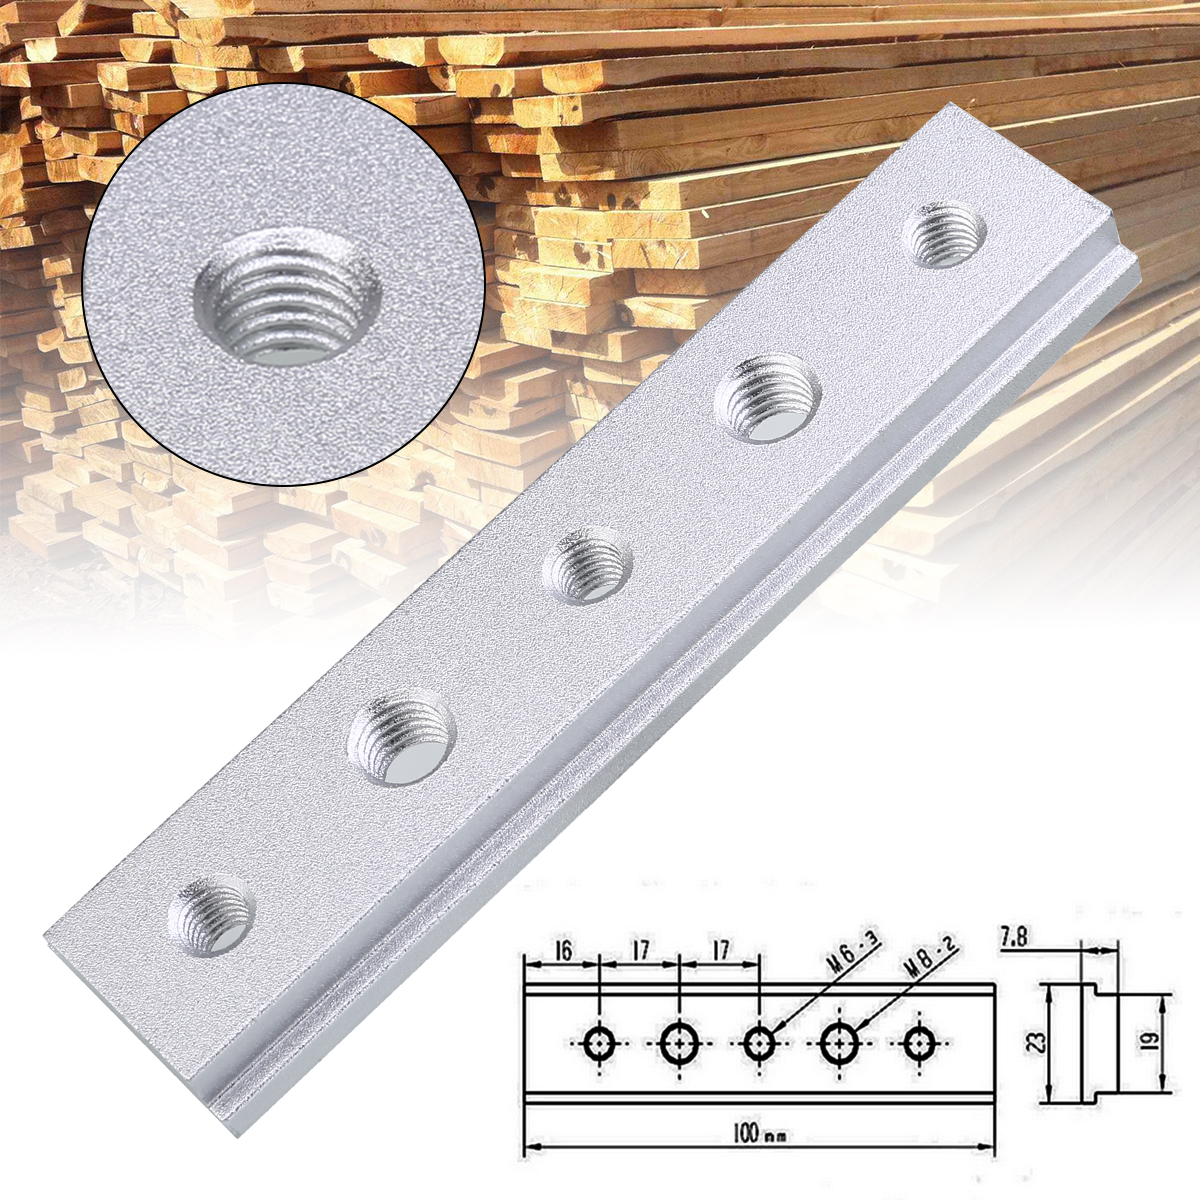 New 100mm Aluminium Alloy T-Slot T-Track Miter Track Jig Fixture For Table Saw Router Table Woodworking Tool